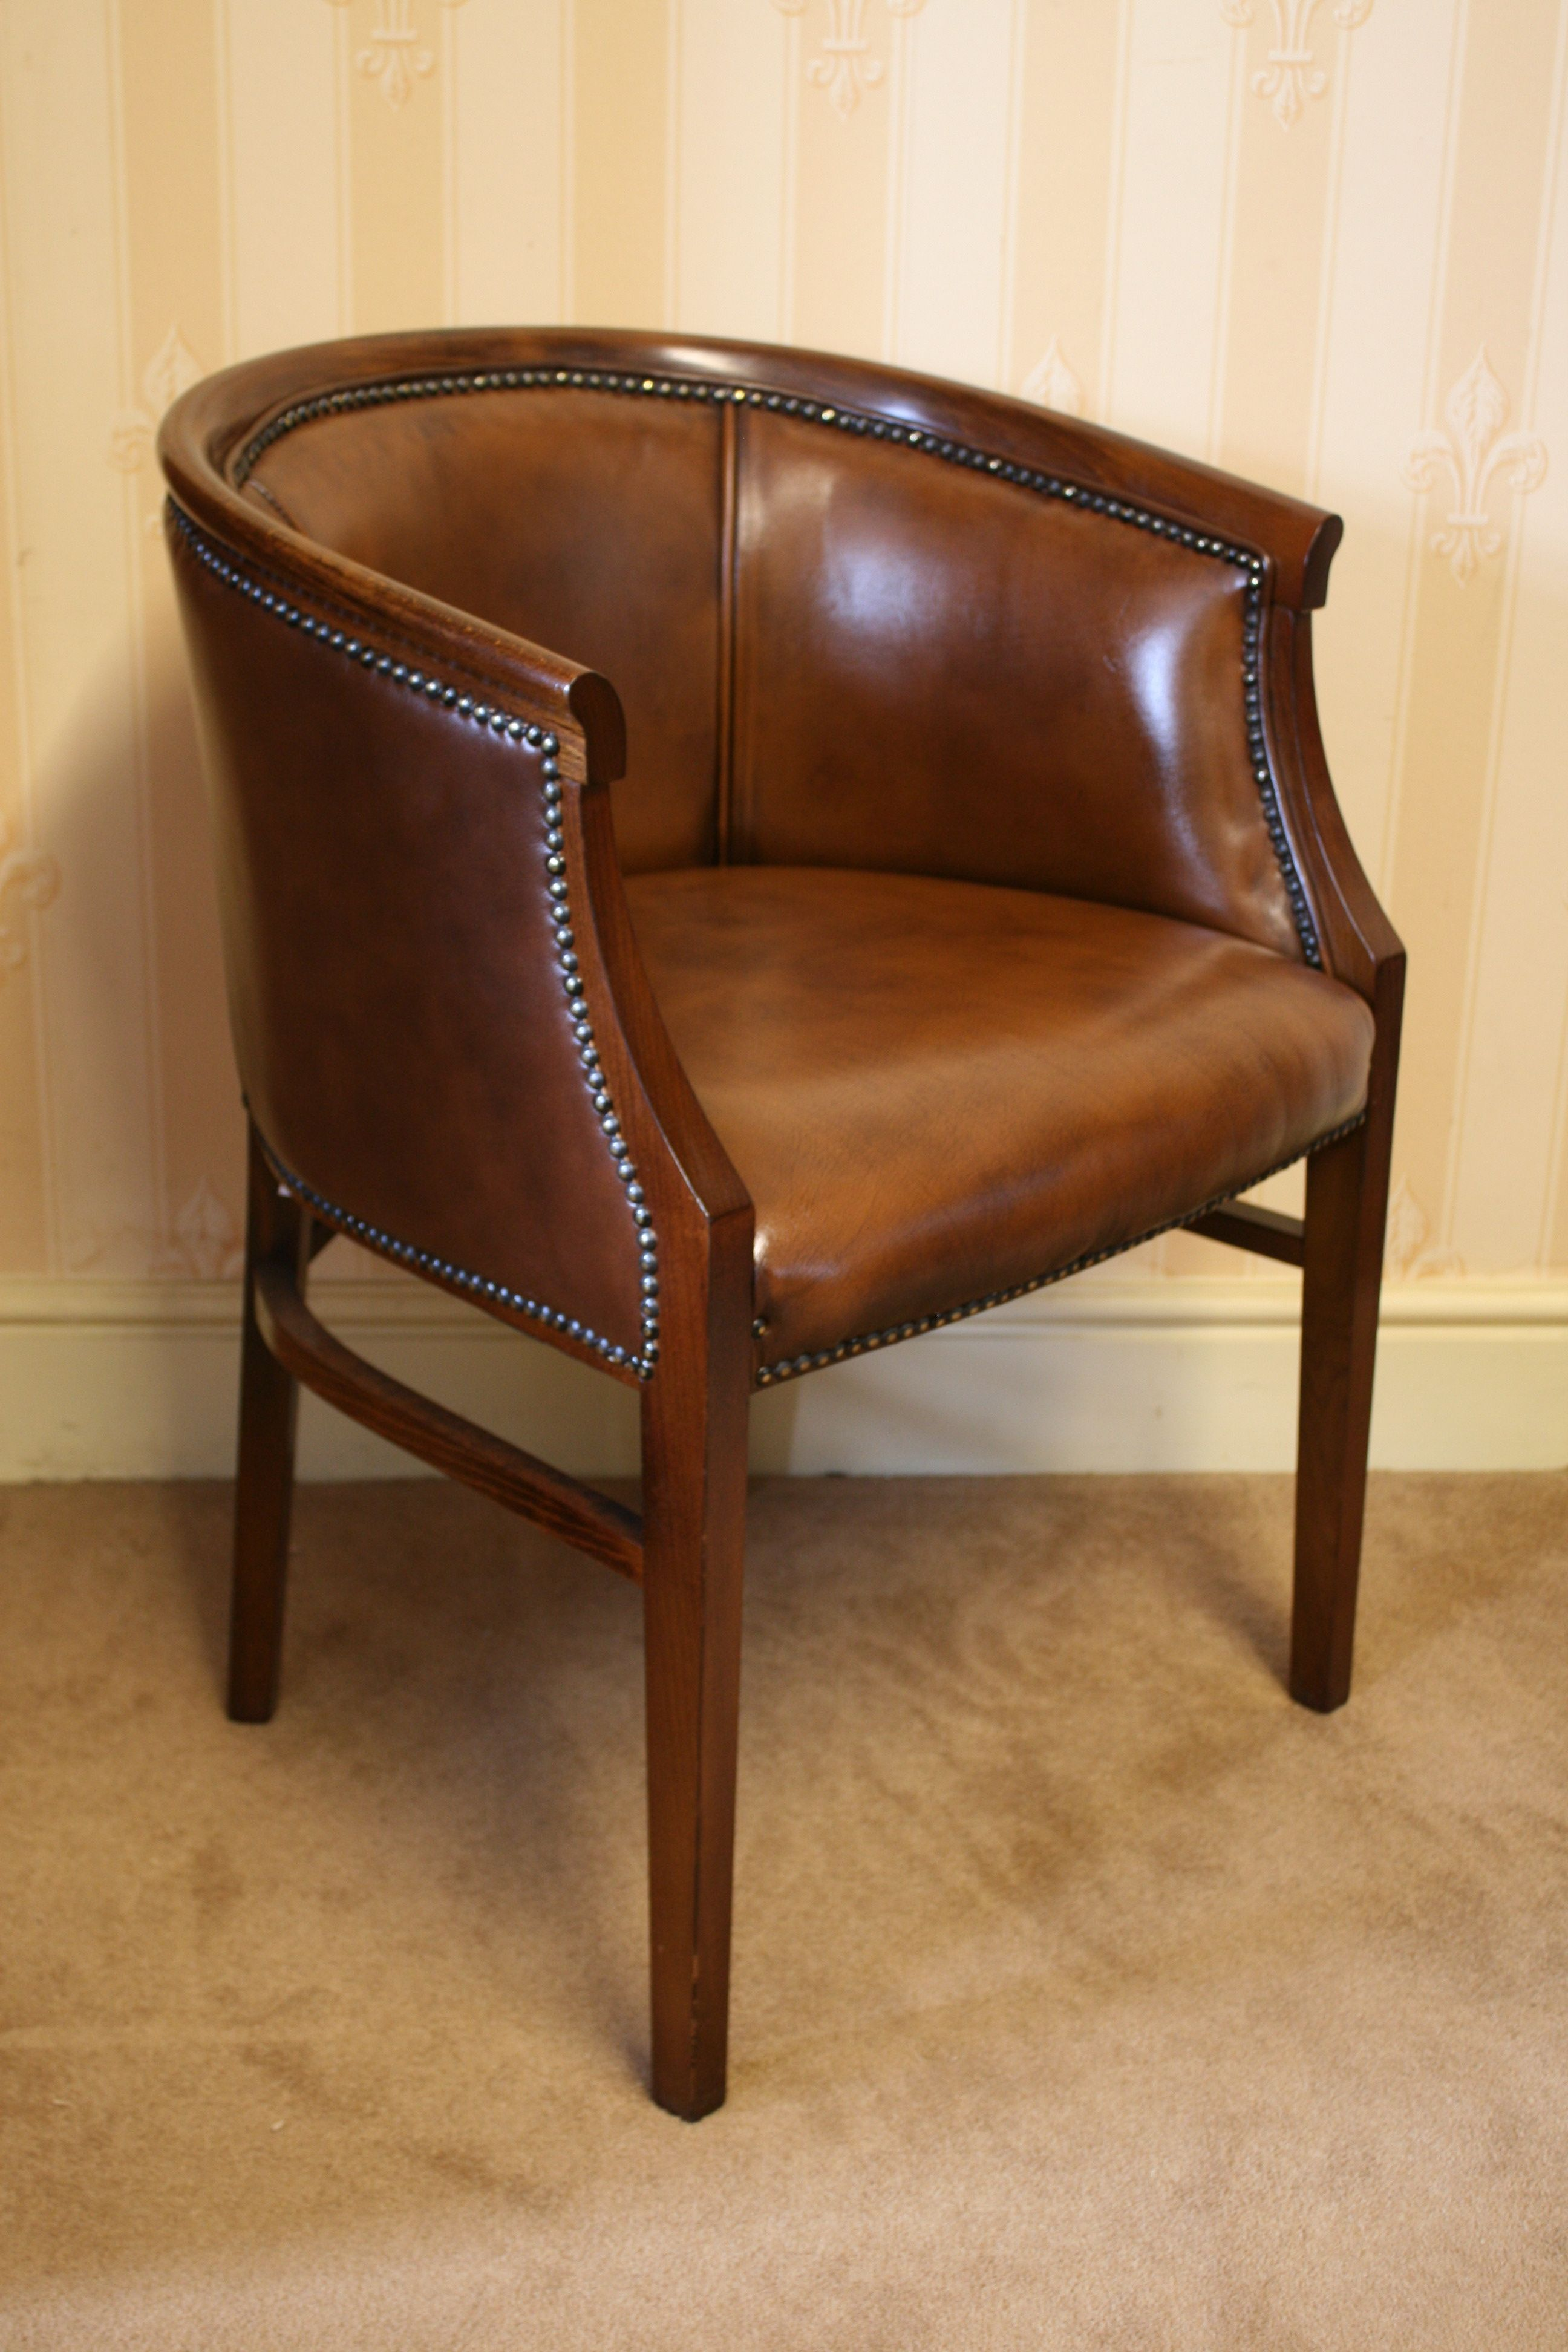 Fabulous Regal Tub Chair Thedeskcentre Co Uk Chair In 2019 Dailytribune Chair Design For Home Dailytribuneorg